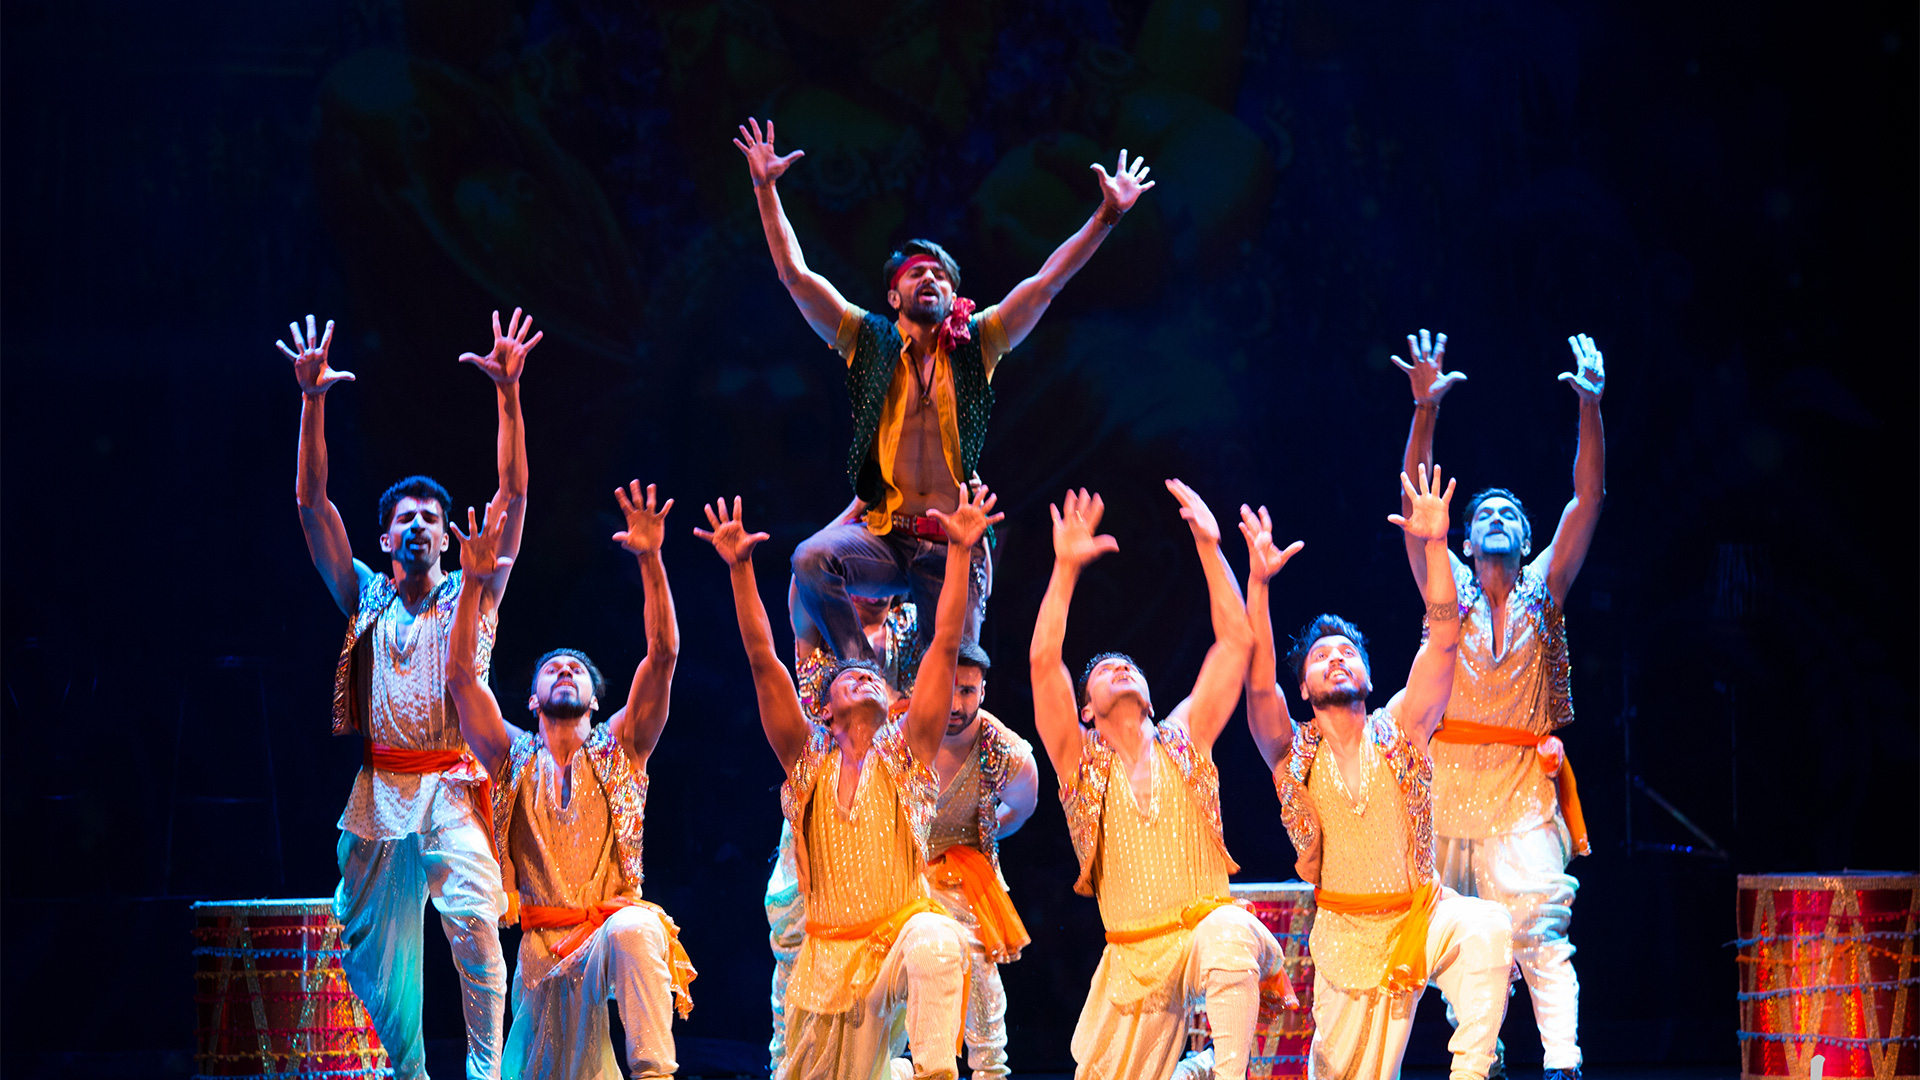 A group of 7 dancers hold their hands in the air during a performance of Taj Express.